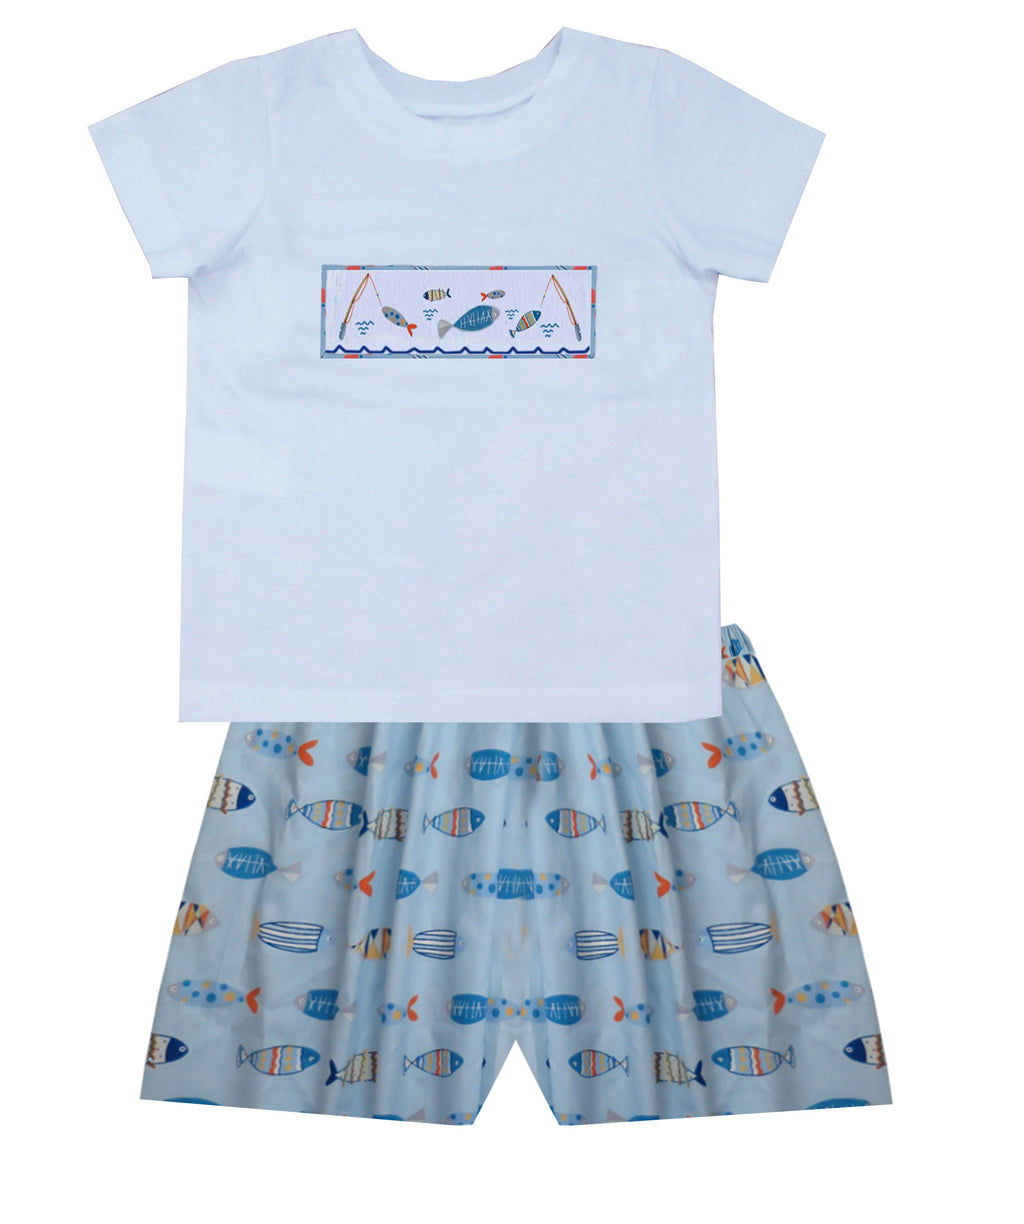 Fishin' Camp Boys Short Set